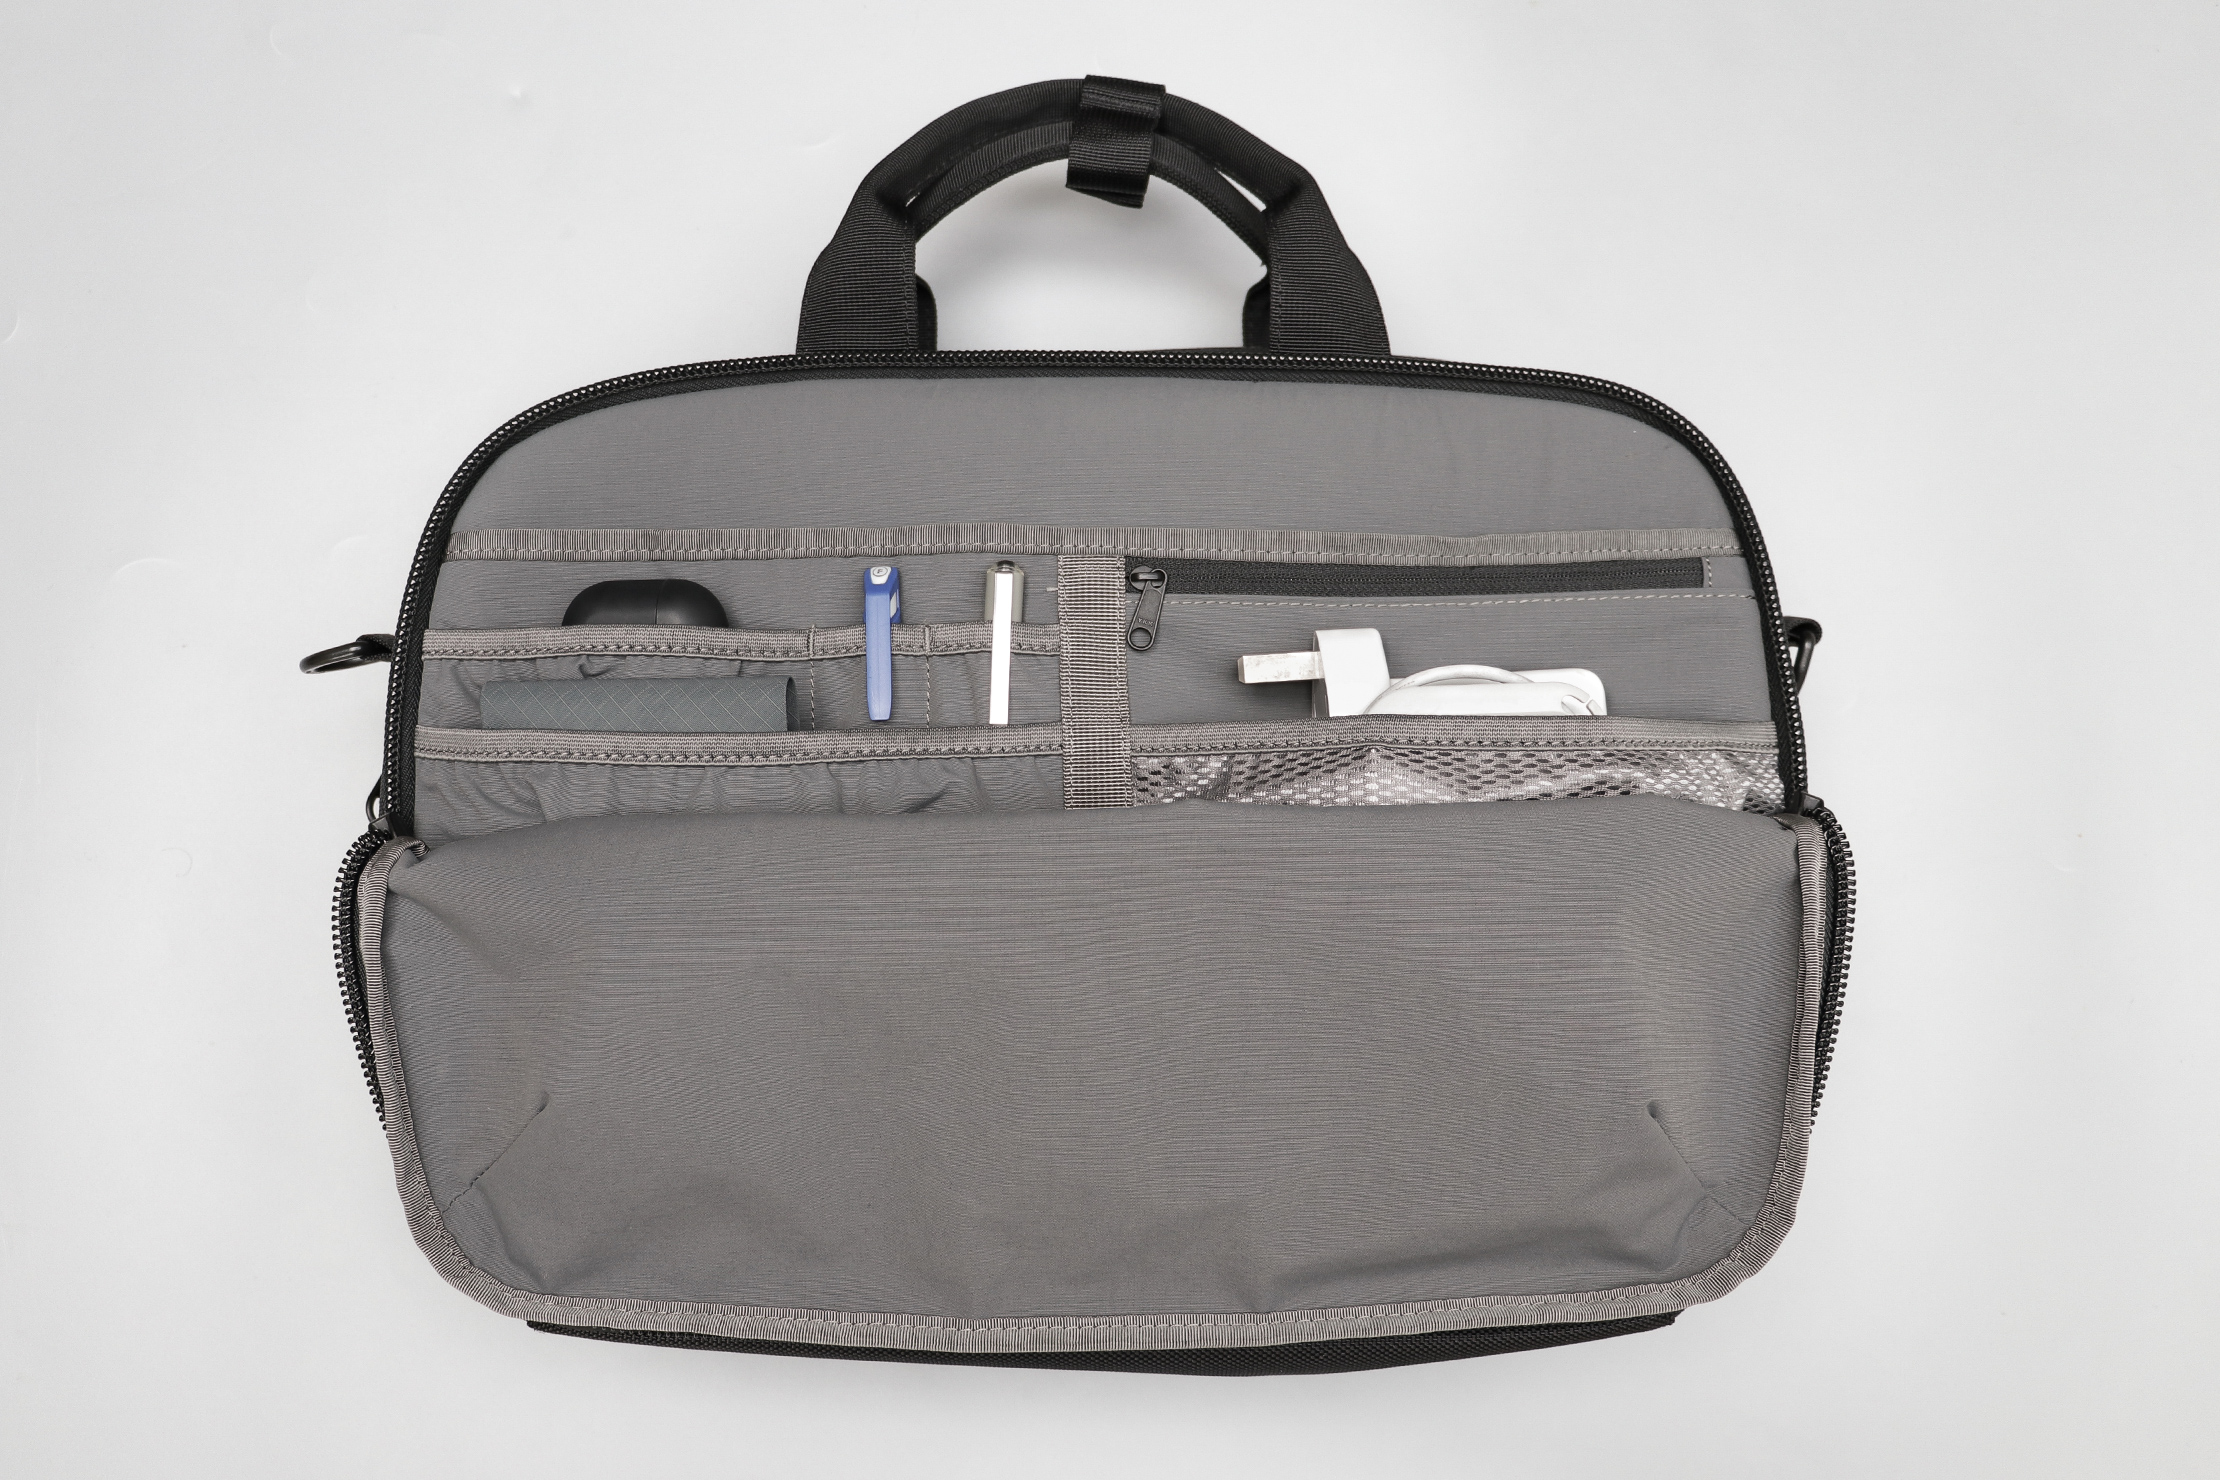 Aer Commuter Brief 2 Front Compartment Organization